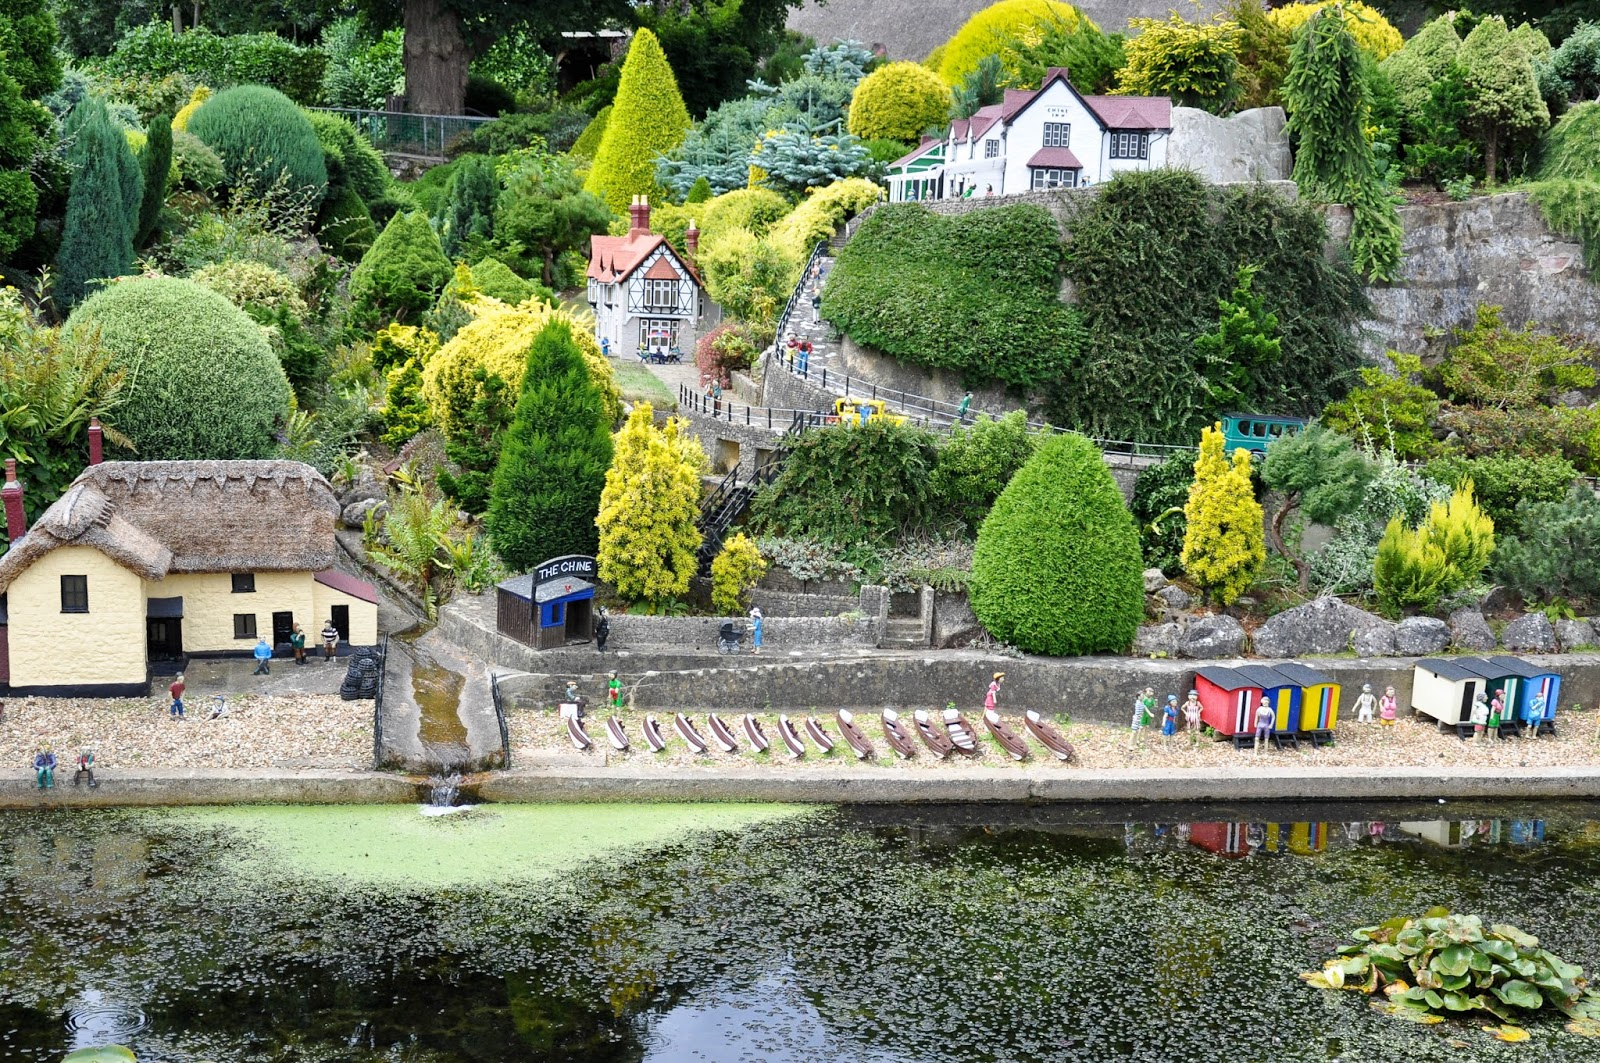 The beach, Model Village, Godshill, Isle of Wight, UK